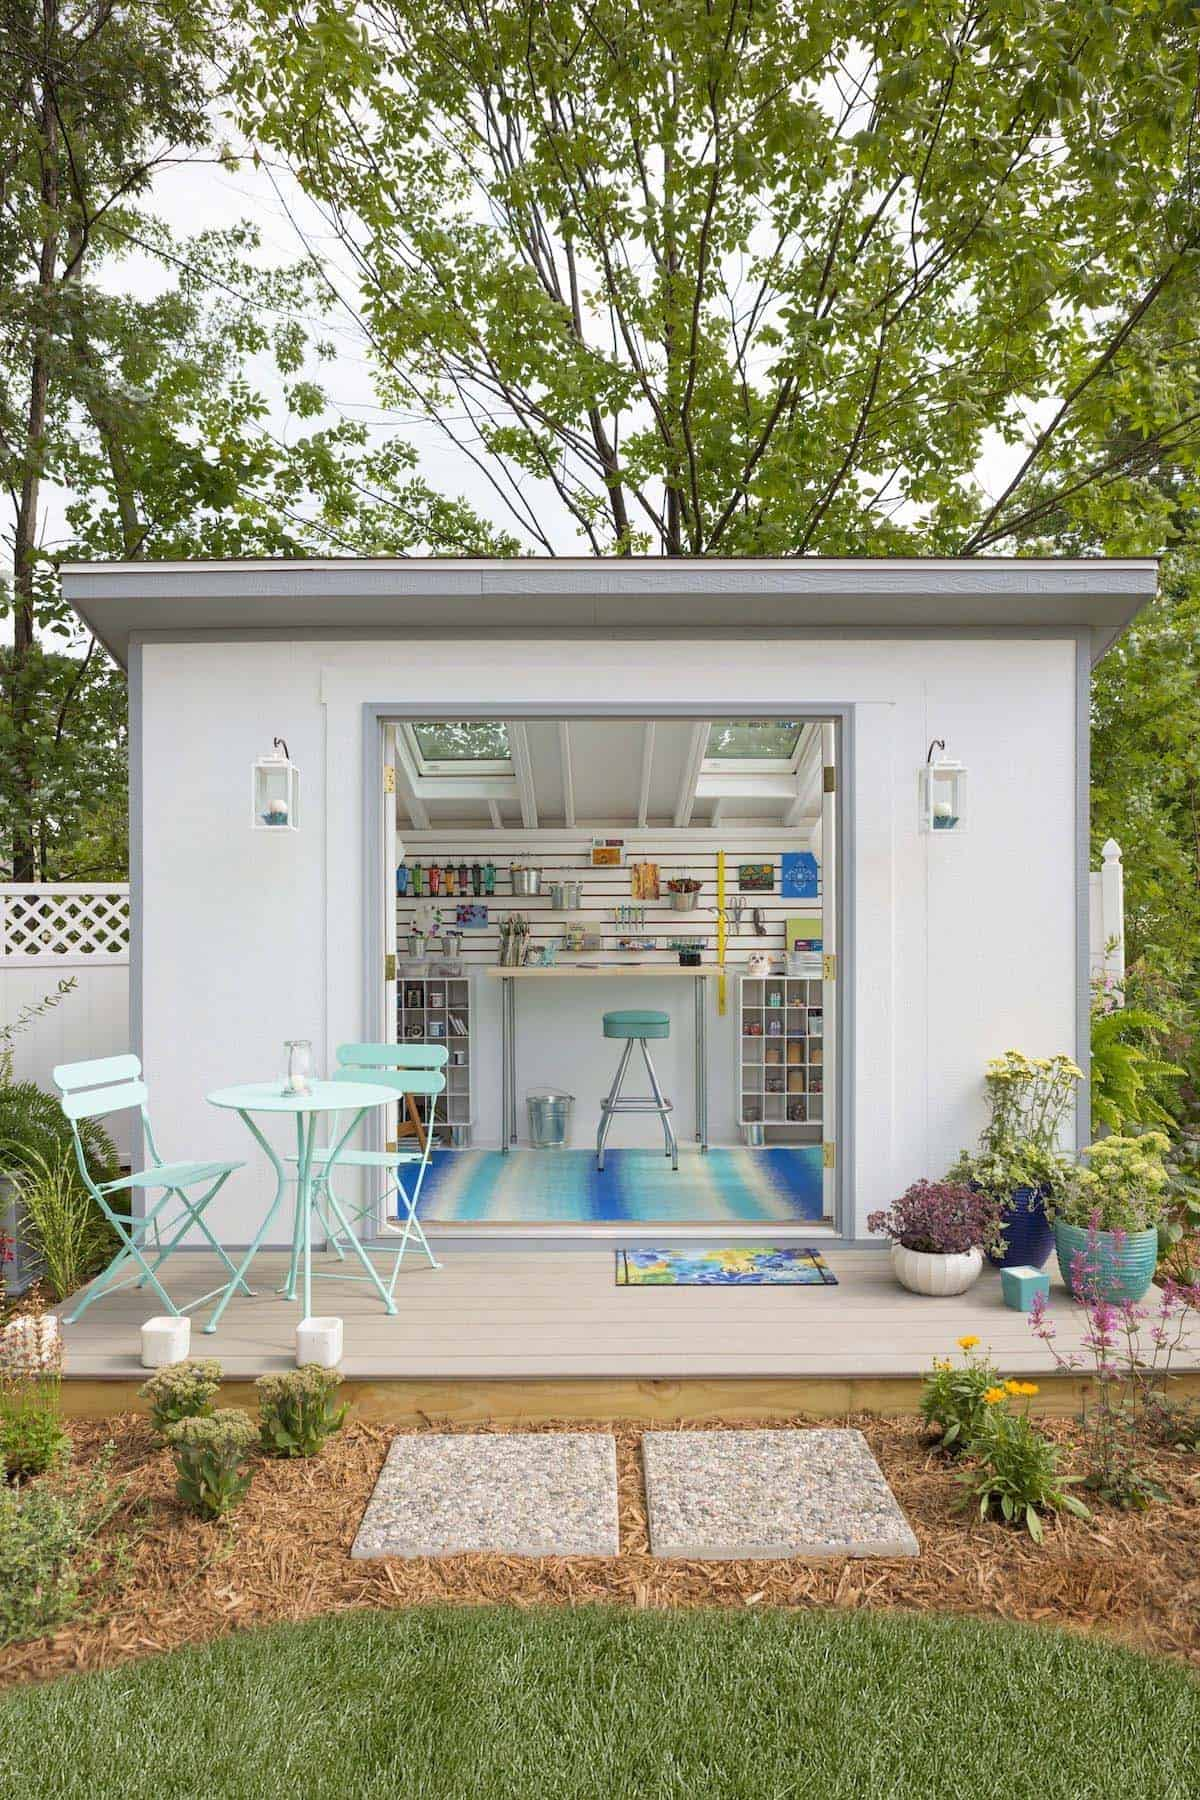 30 Wonderfully Inspiring She Shed Ideas To Adorn Your